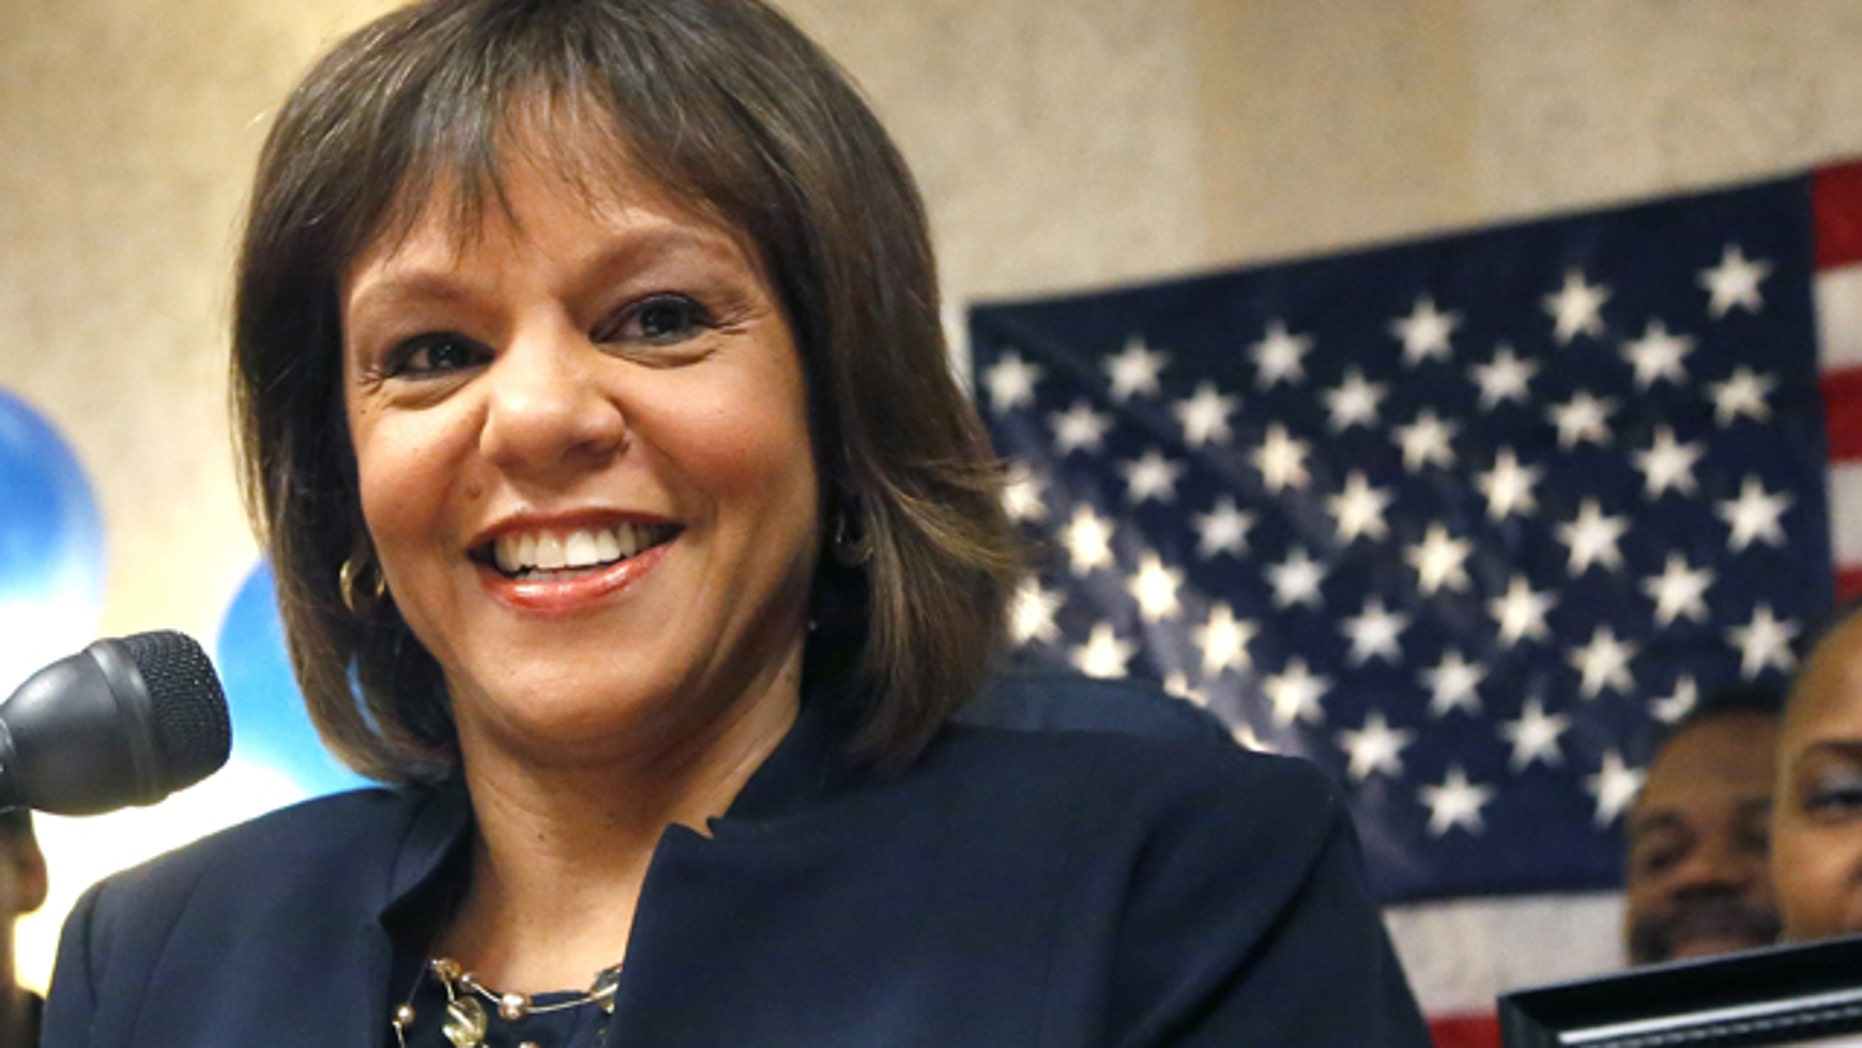 Feb. 26, 2013: Robin Kelly celebrates her special primary election win for Illinois' 2nd Congressional District, once held by Jesse Jackson Jr.